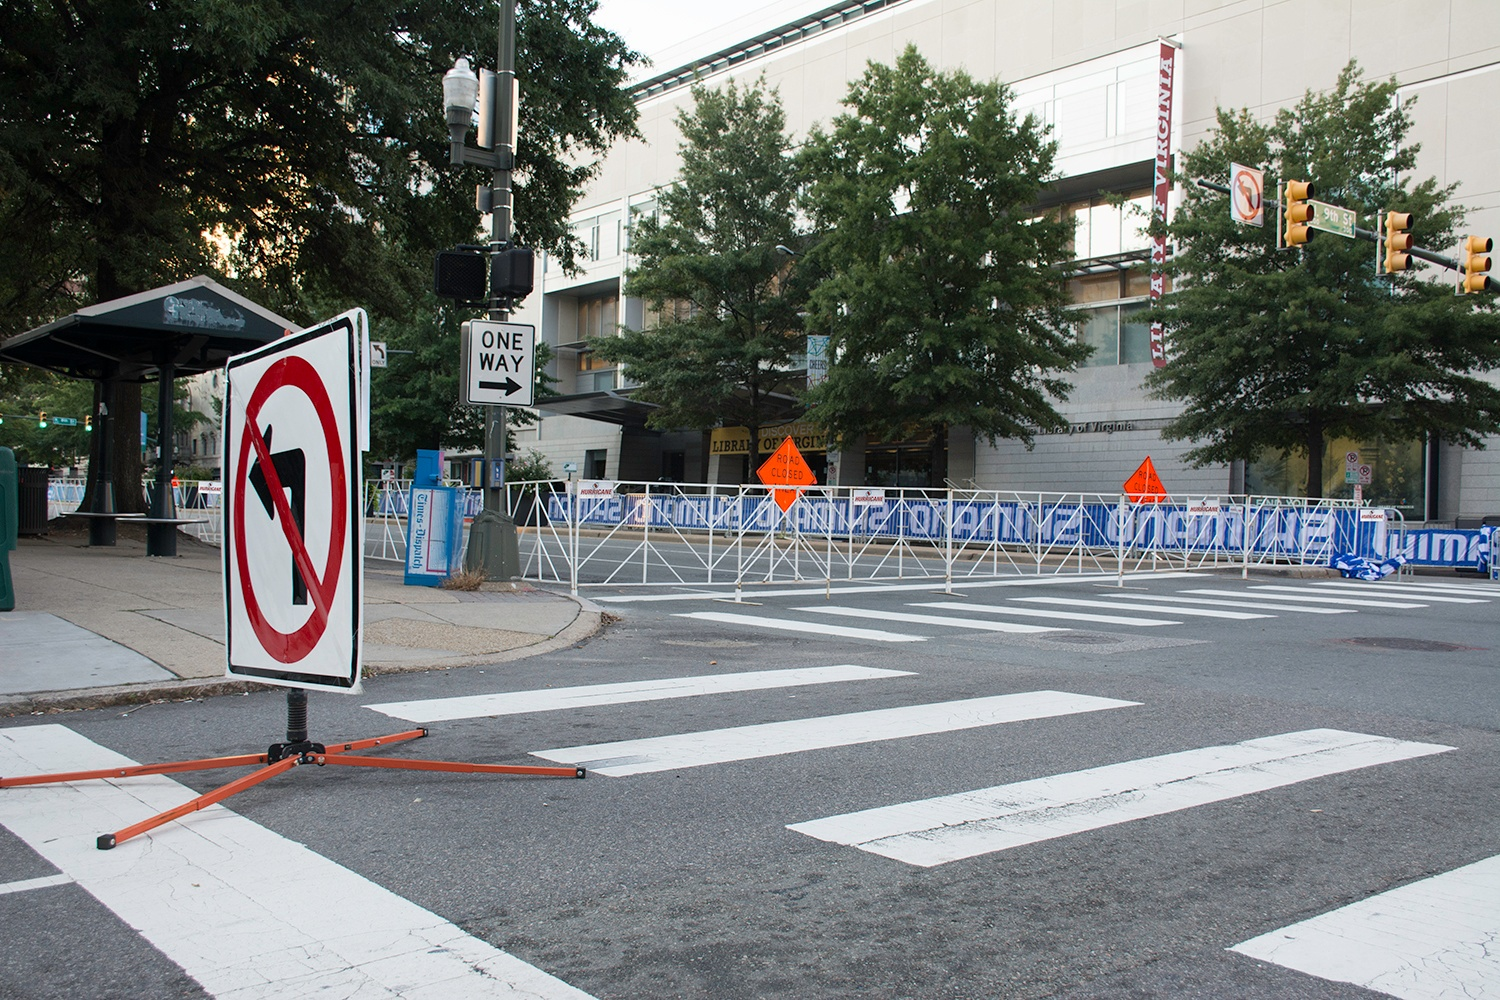 Broat street gets ready foir the big Richmond 2015 bike race with bikeracks and barricades from Hurricane Fence Company in RVA.